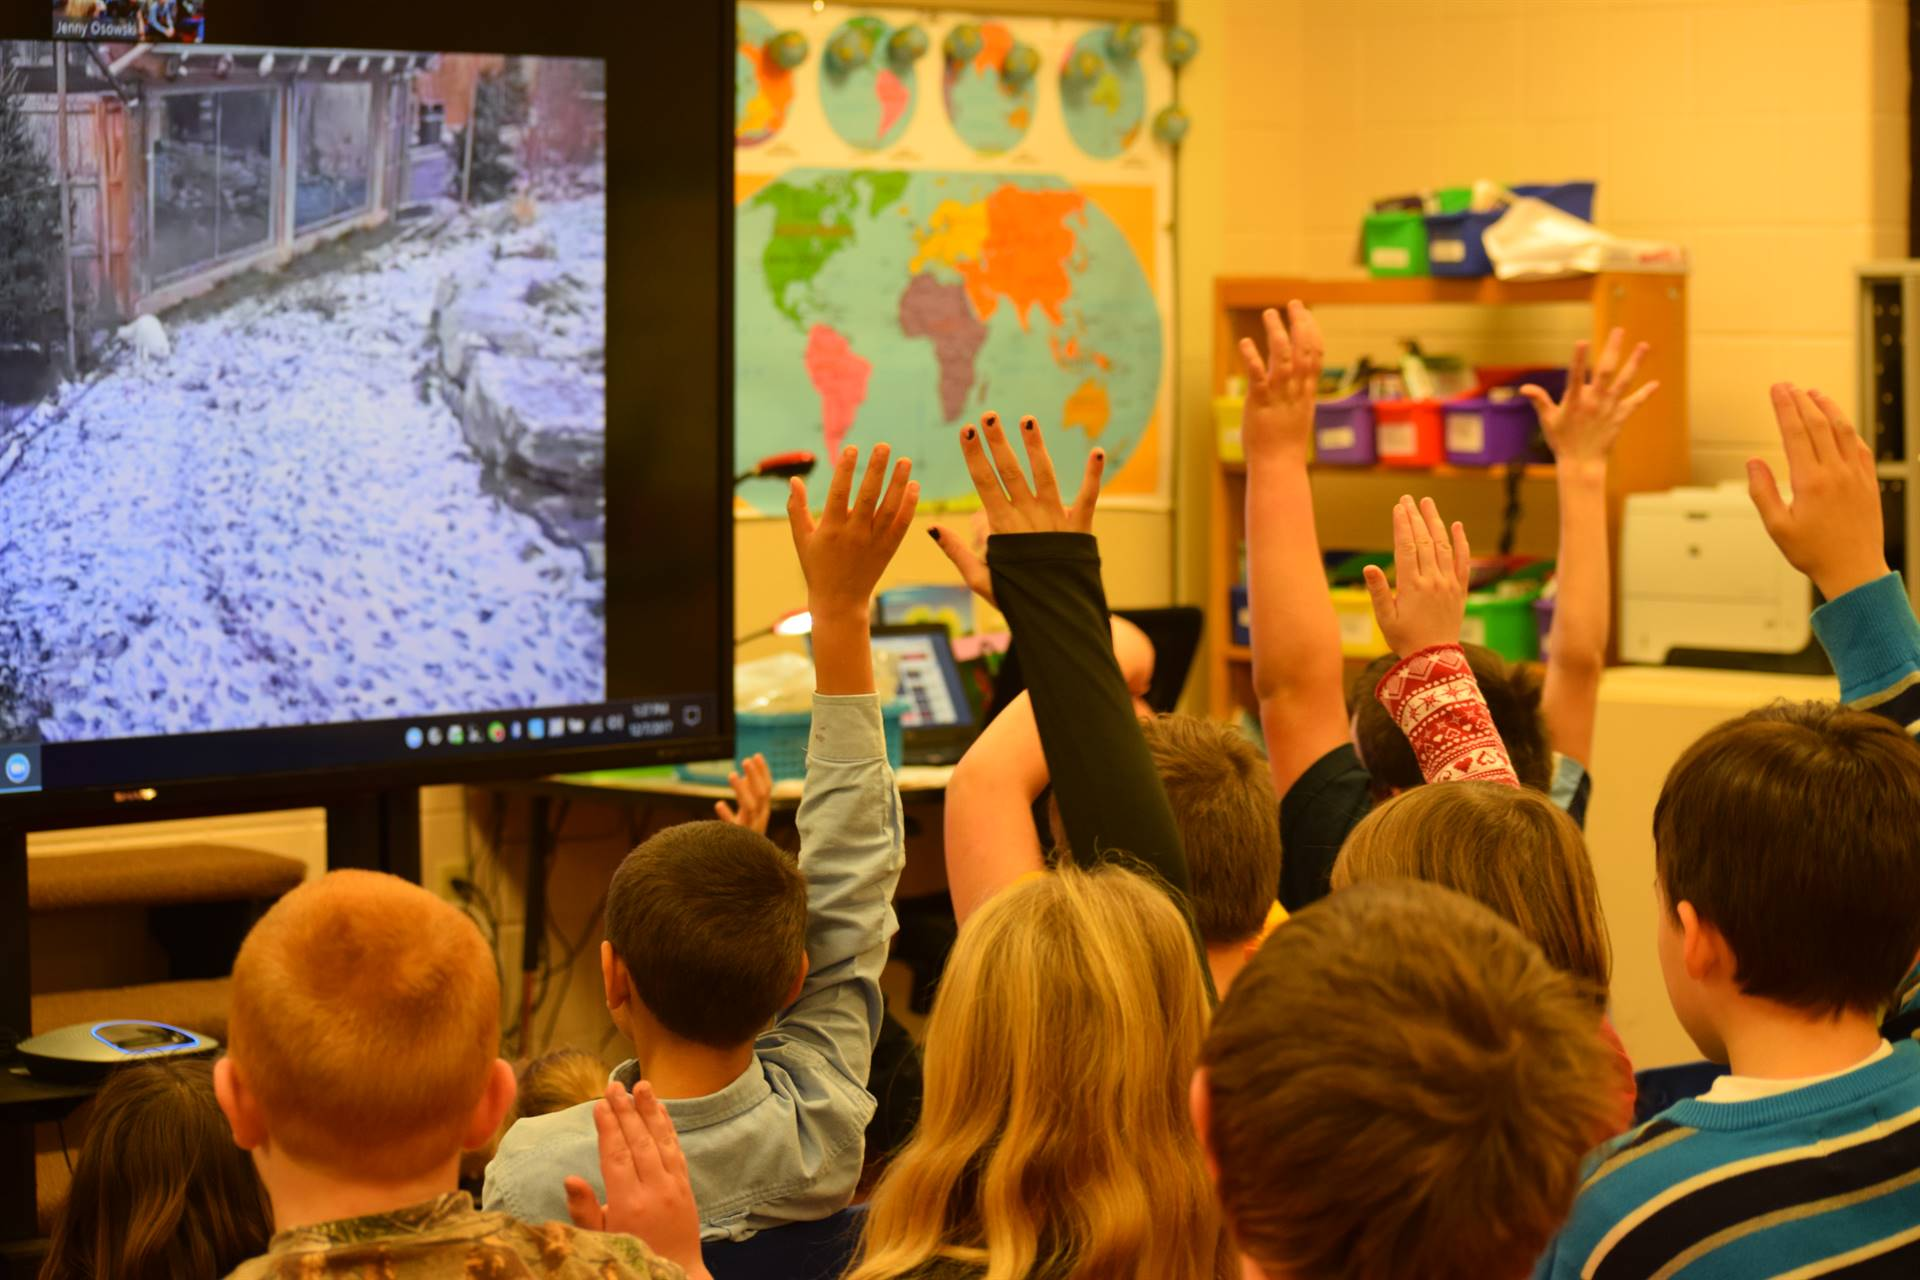 Students raise their hands while watching live video of Arctic fox